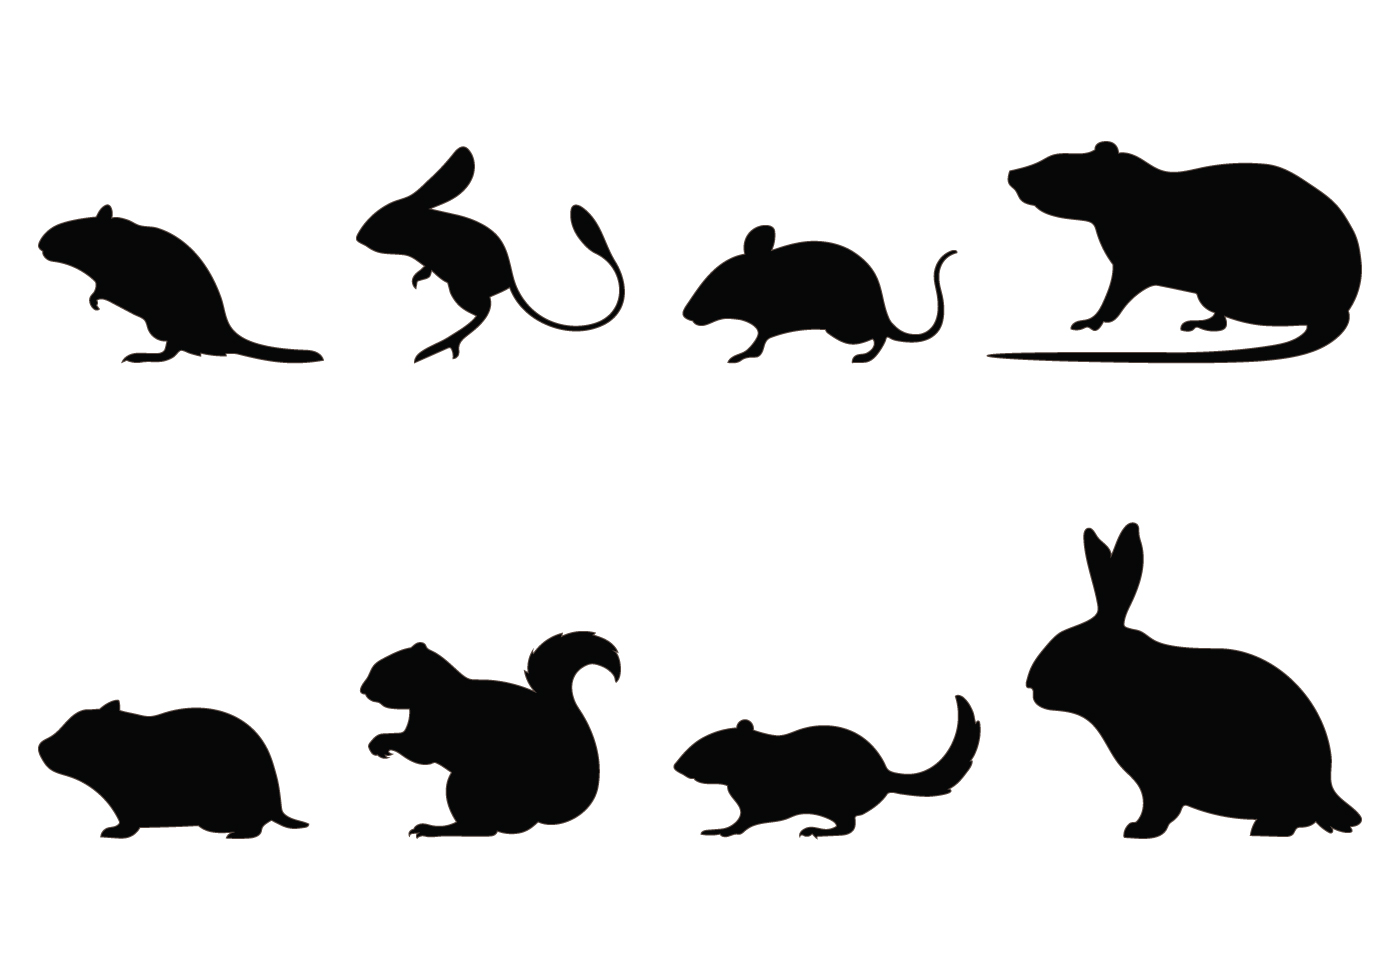 Rodent Silhouettes Download Free Vector Art Stock